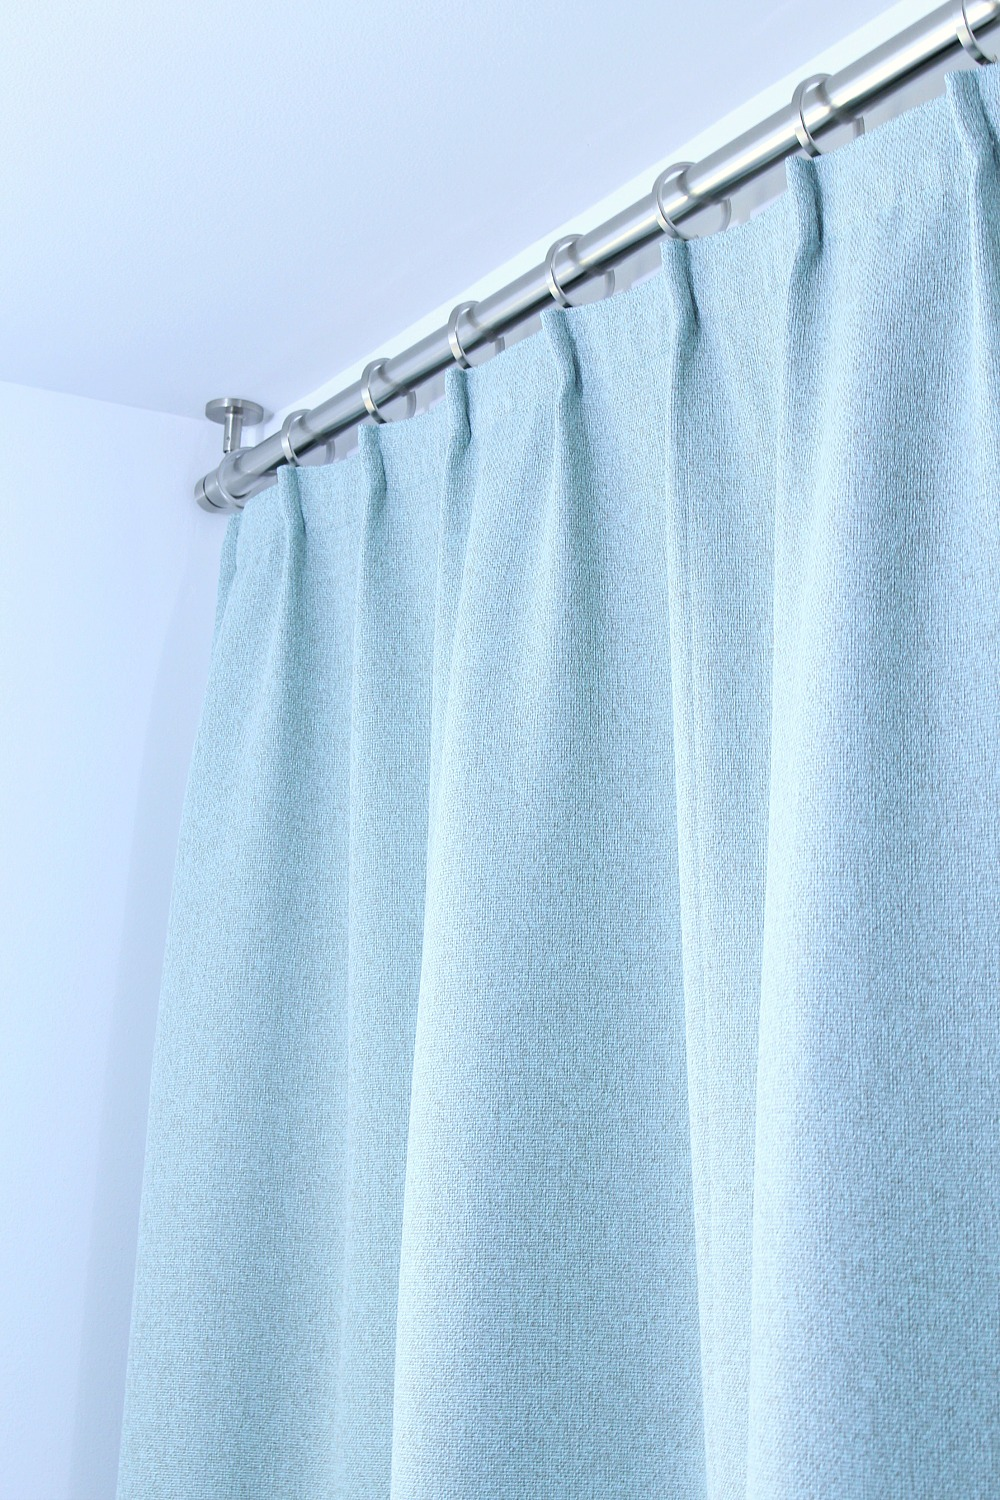 high shower gallery end fairley ceiling curtains track elegant by curtain view with modern system in a tobi